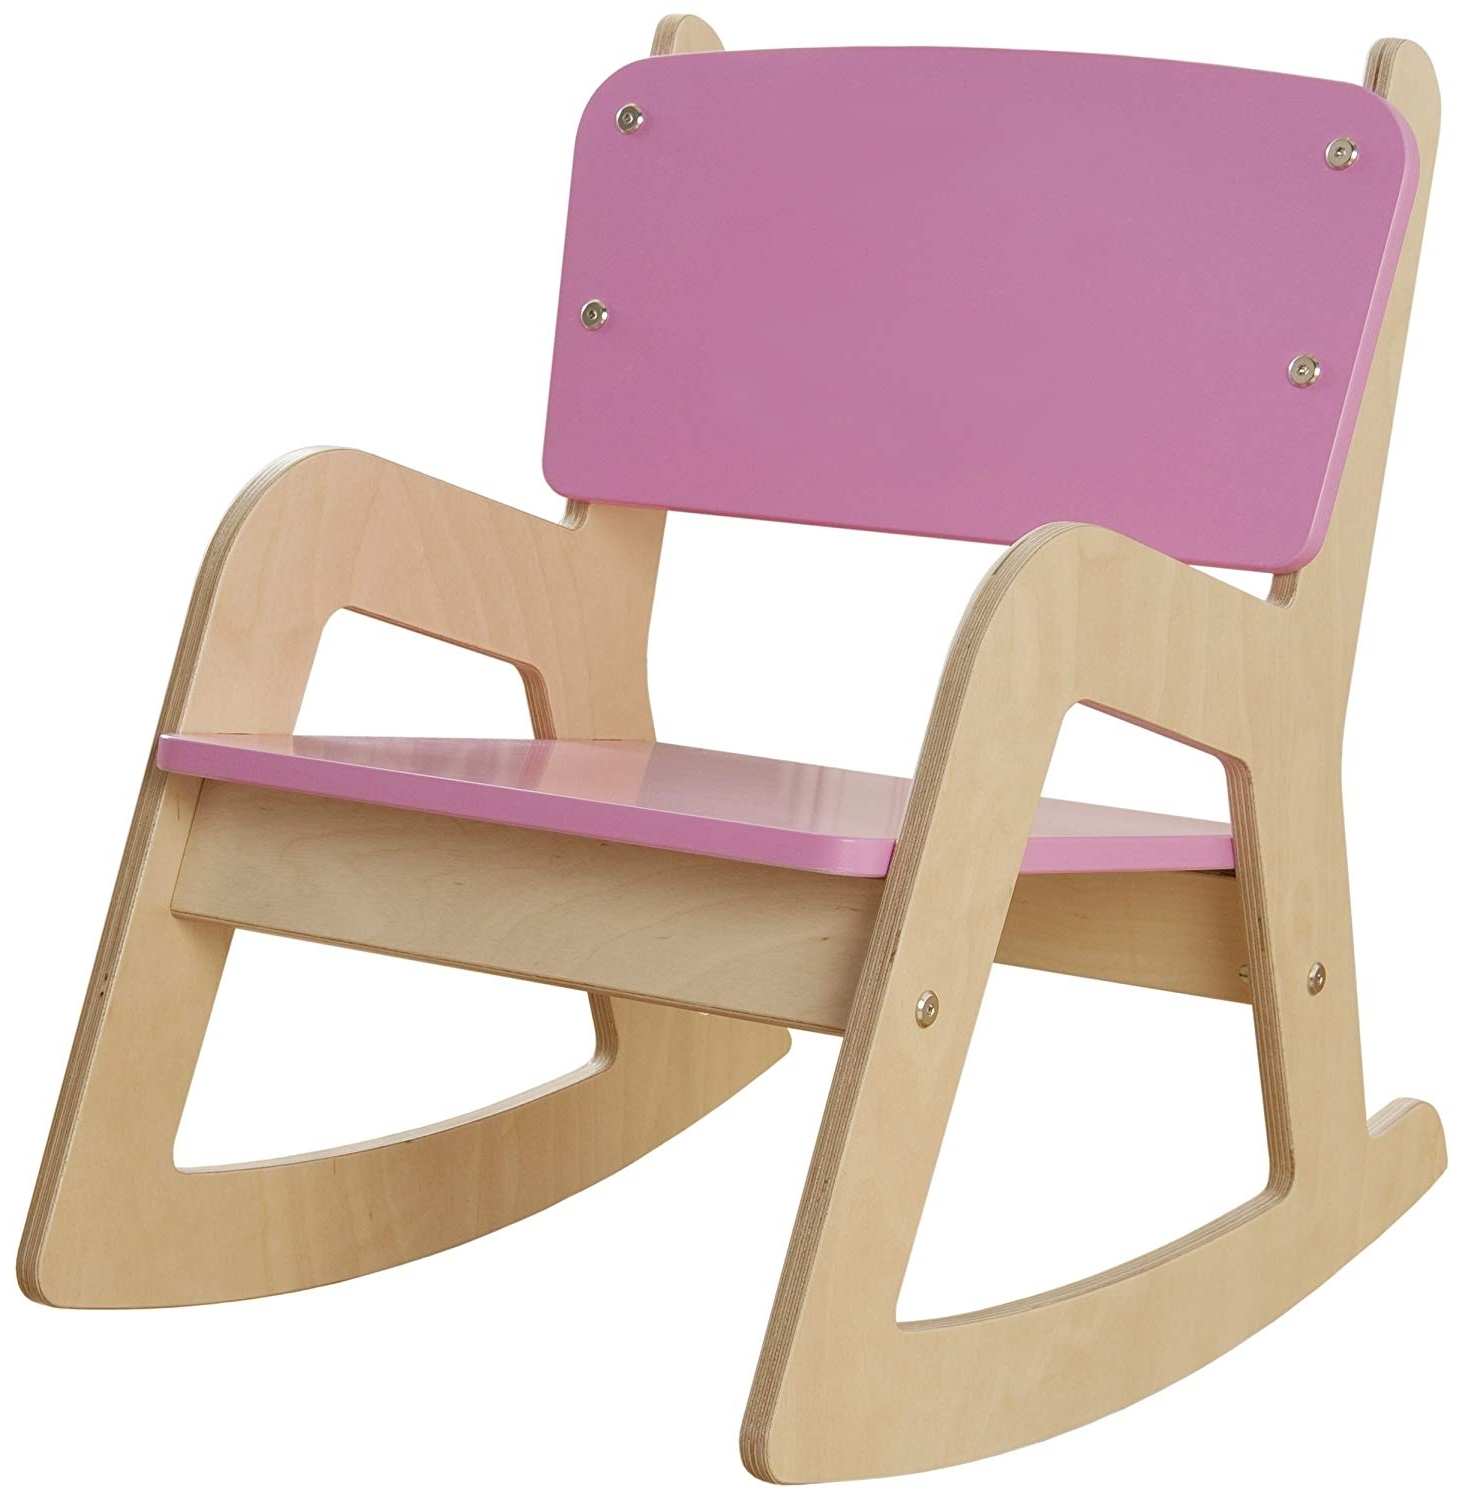 Rocking Chairs For Toddlers Within Preferred Millhouse Children's Wooden Rocking Chair (Pink): Amazon.co (View 13 of 15)